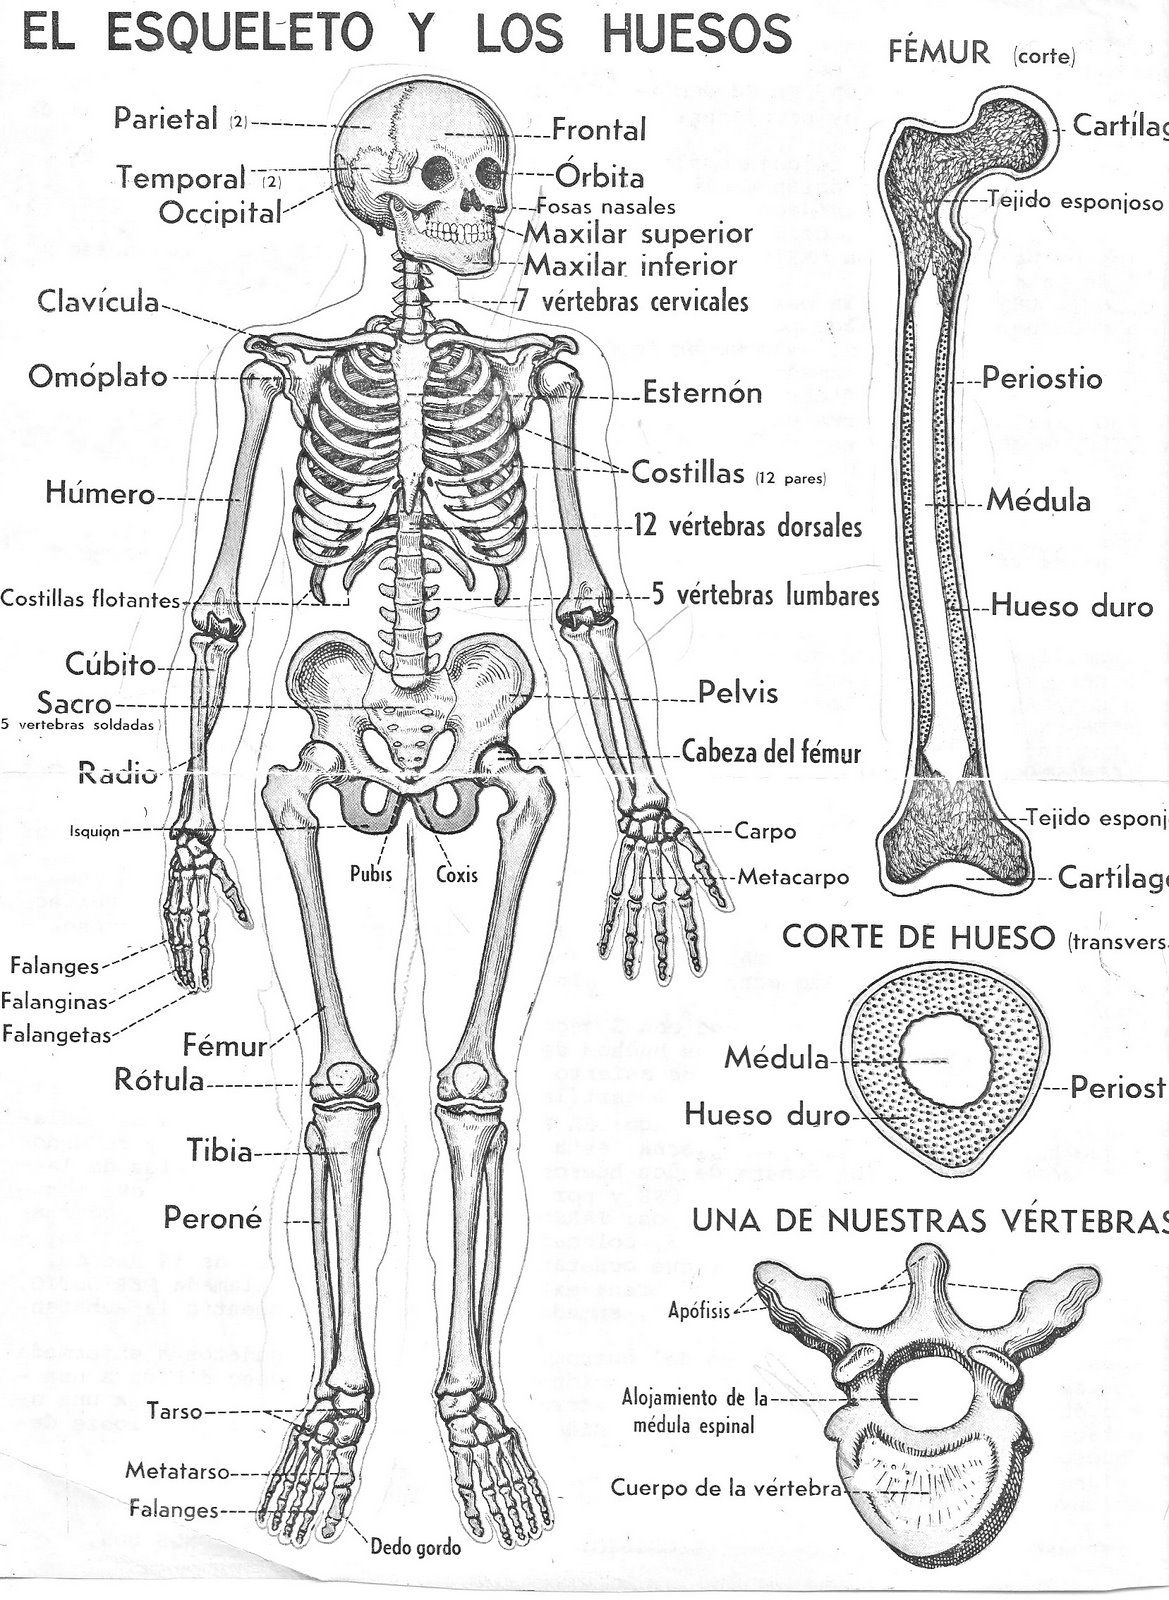 Pin by Elizabeth Cuya on PRESCHOOL | Pinterest | Medicine, Anatomy ...